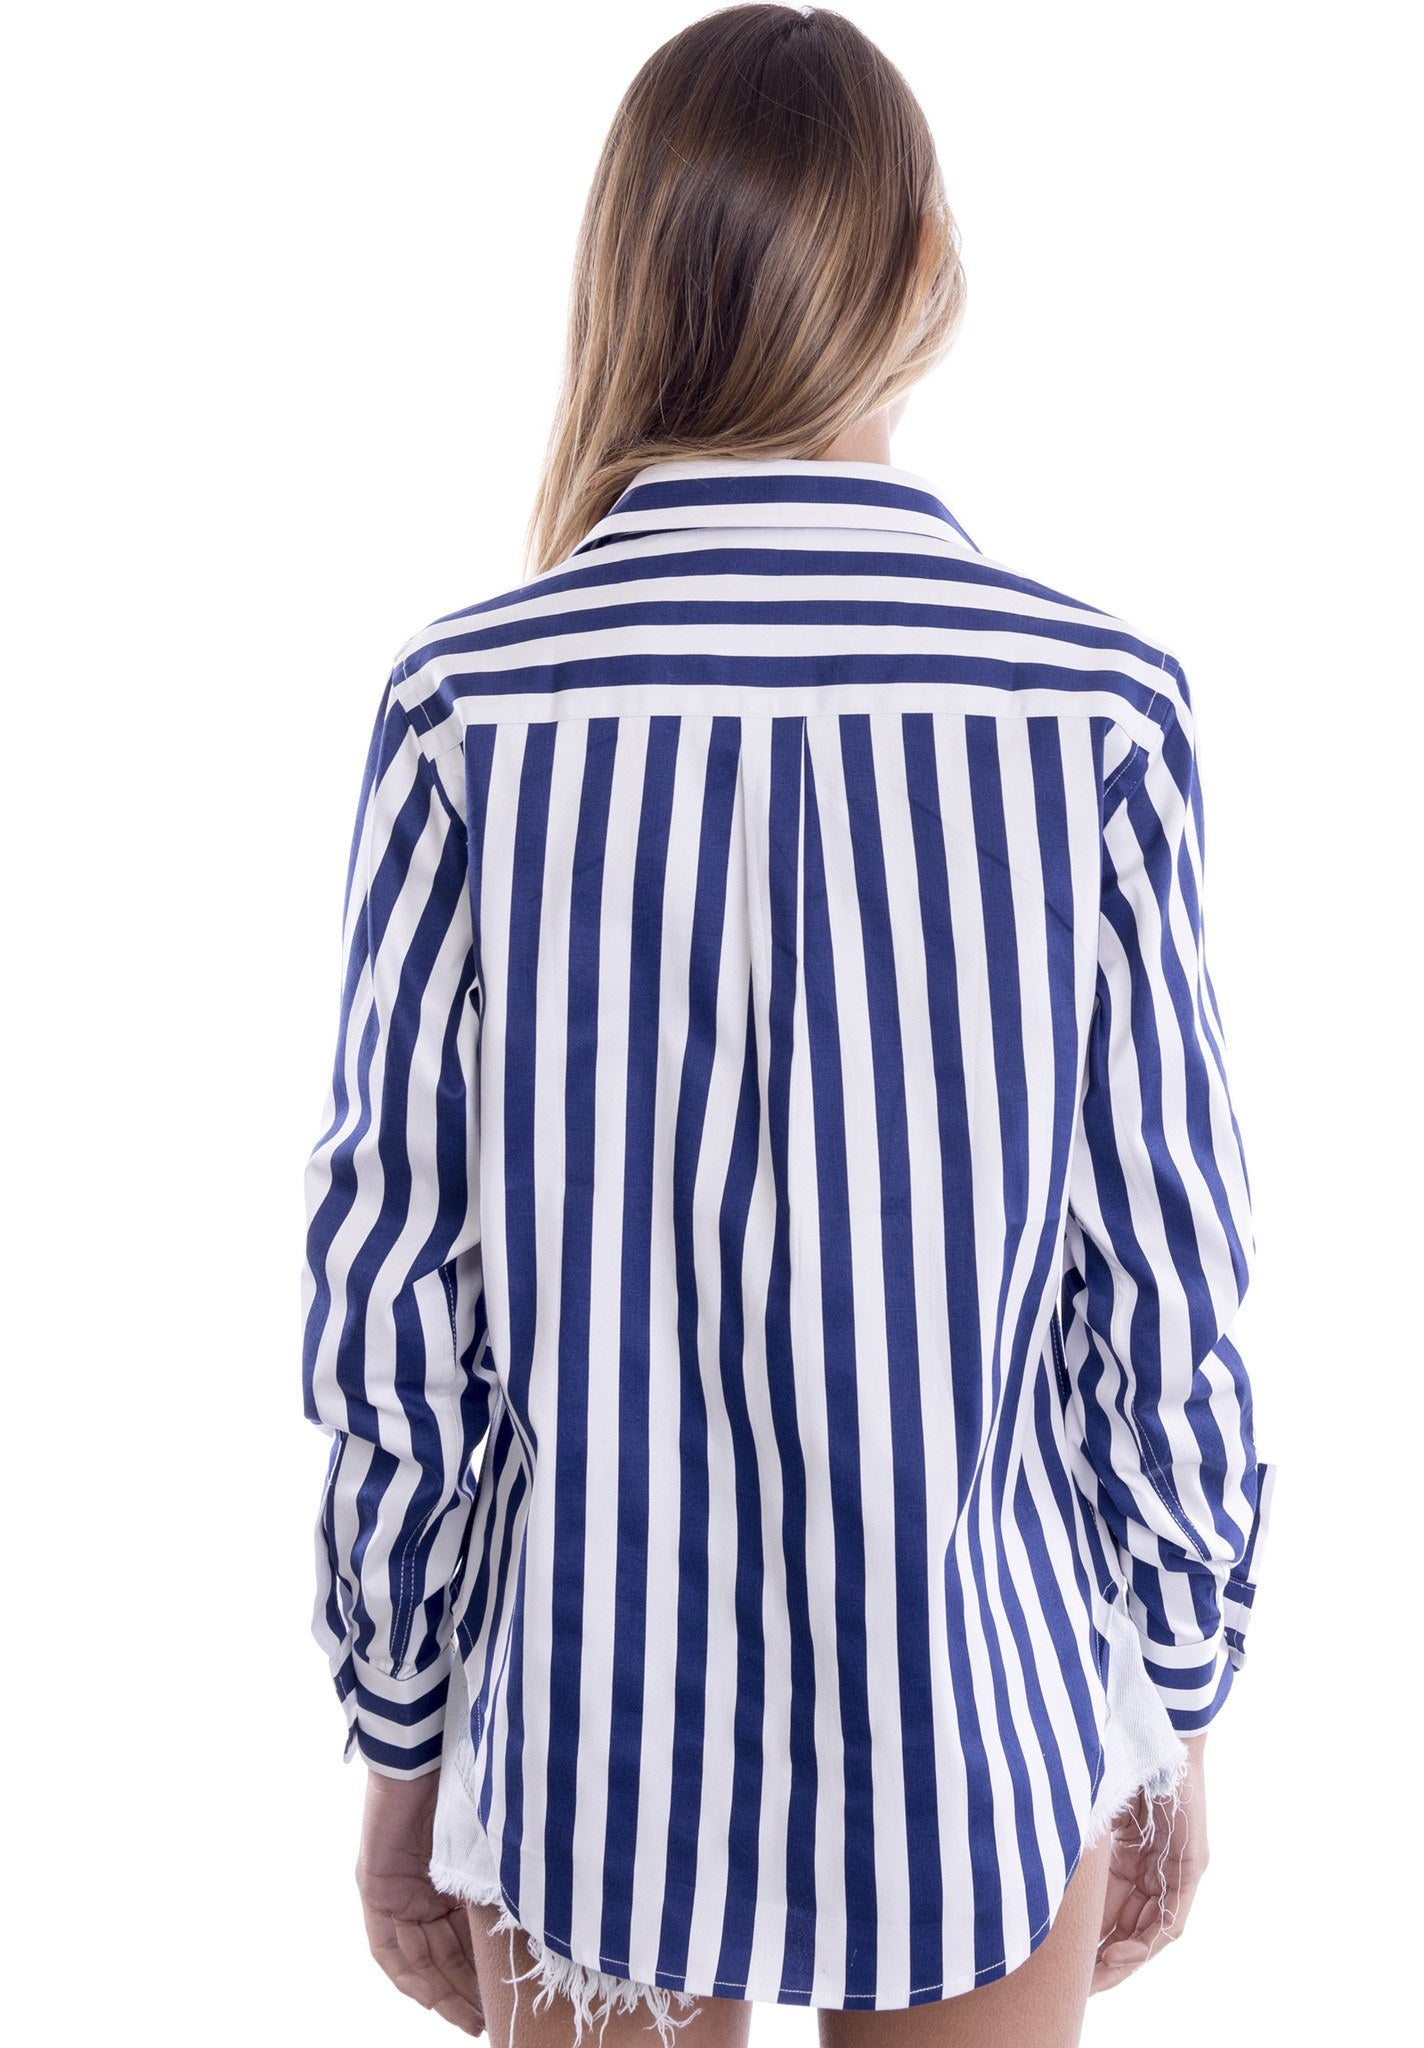 Find great deals on eBay for mens blue and white striped shirt and mens blue and white striped t shirt. Shop with confidence.